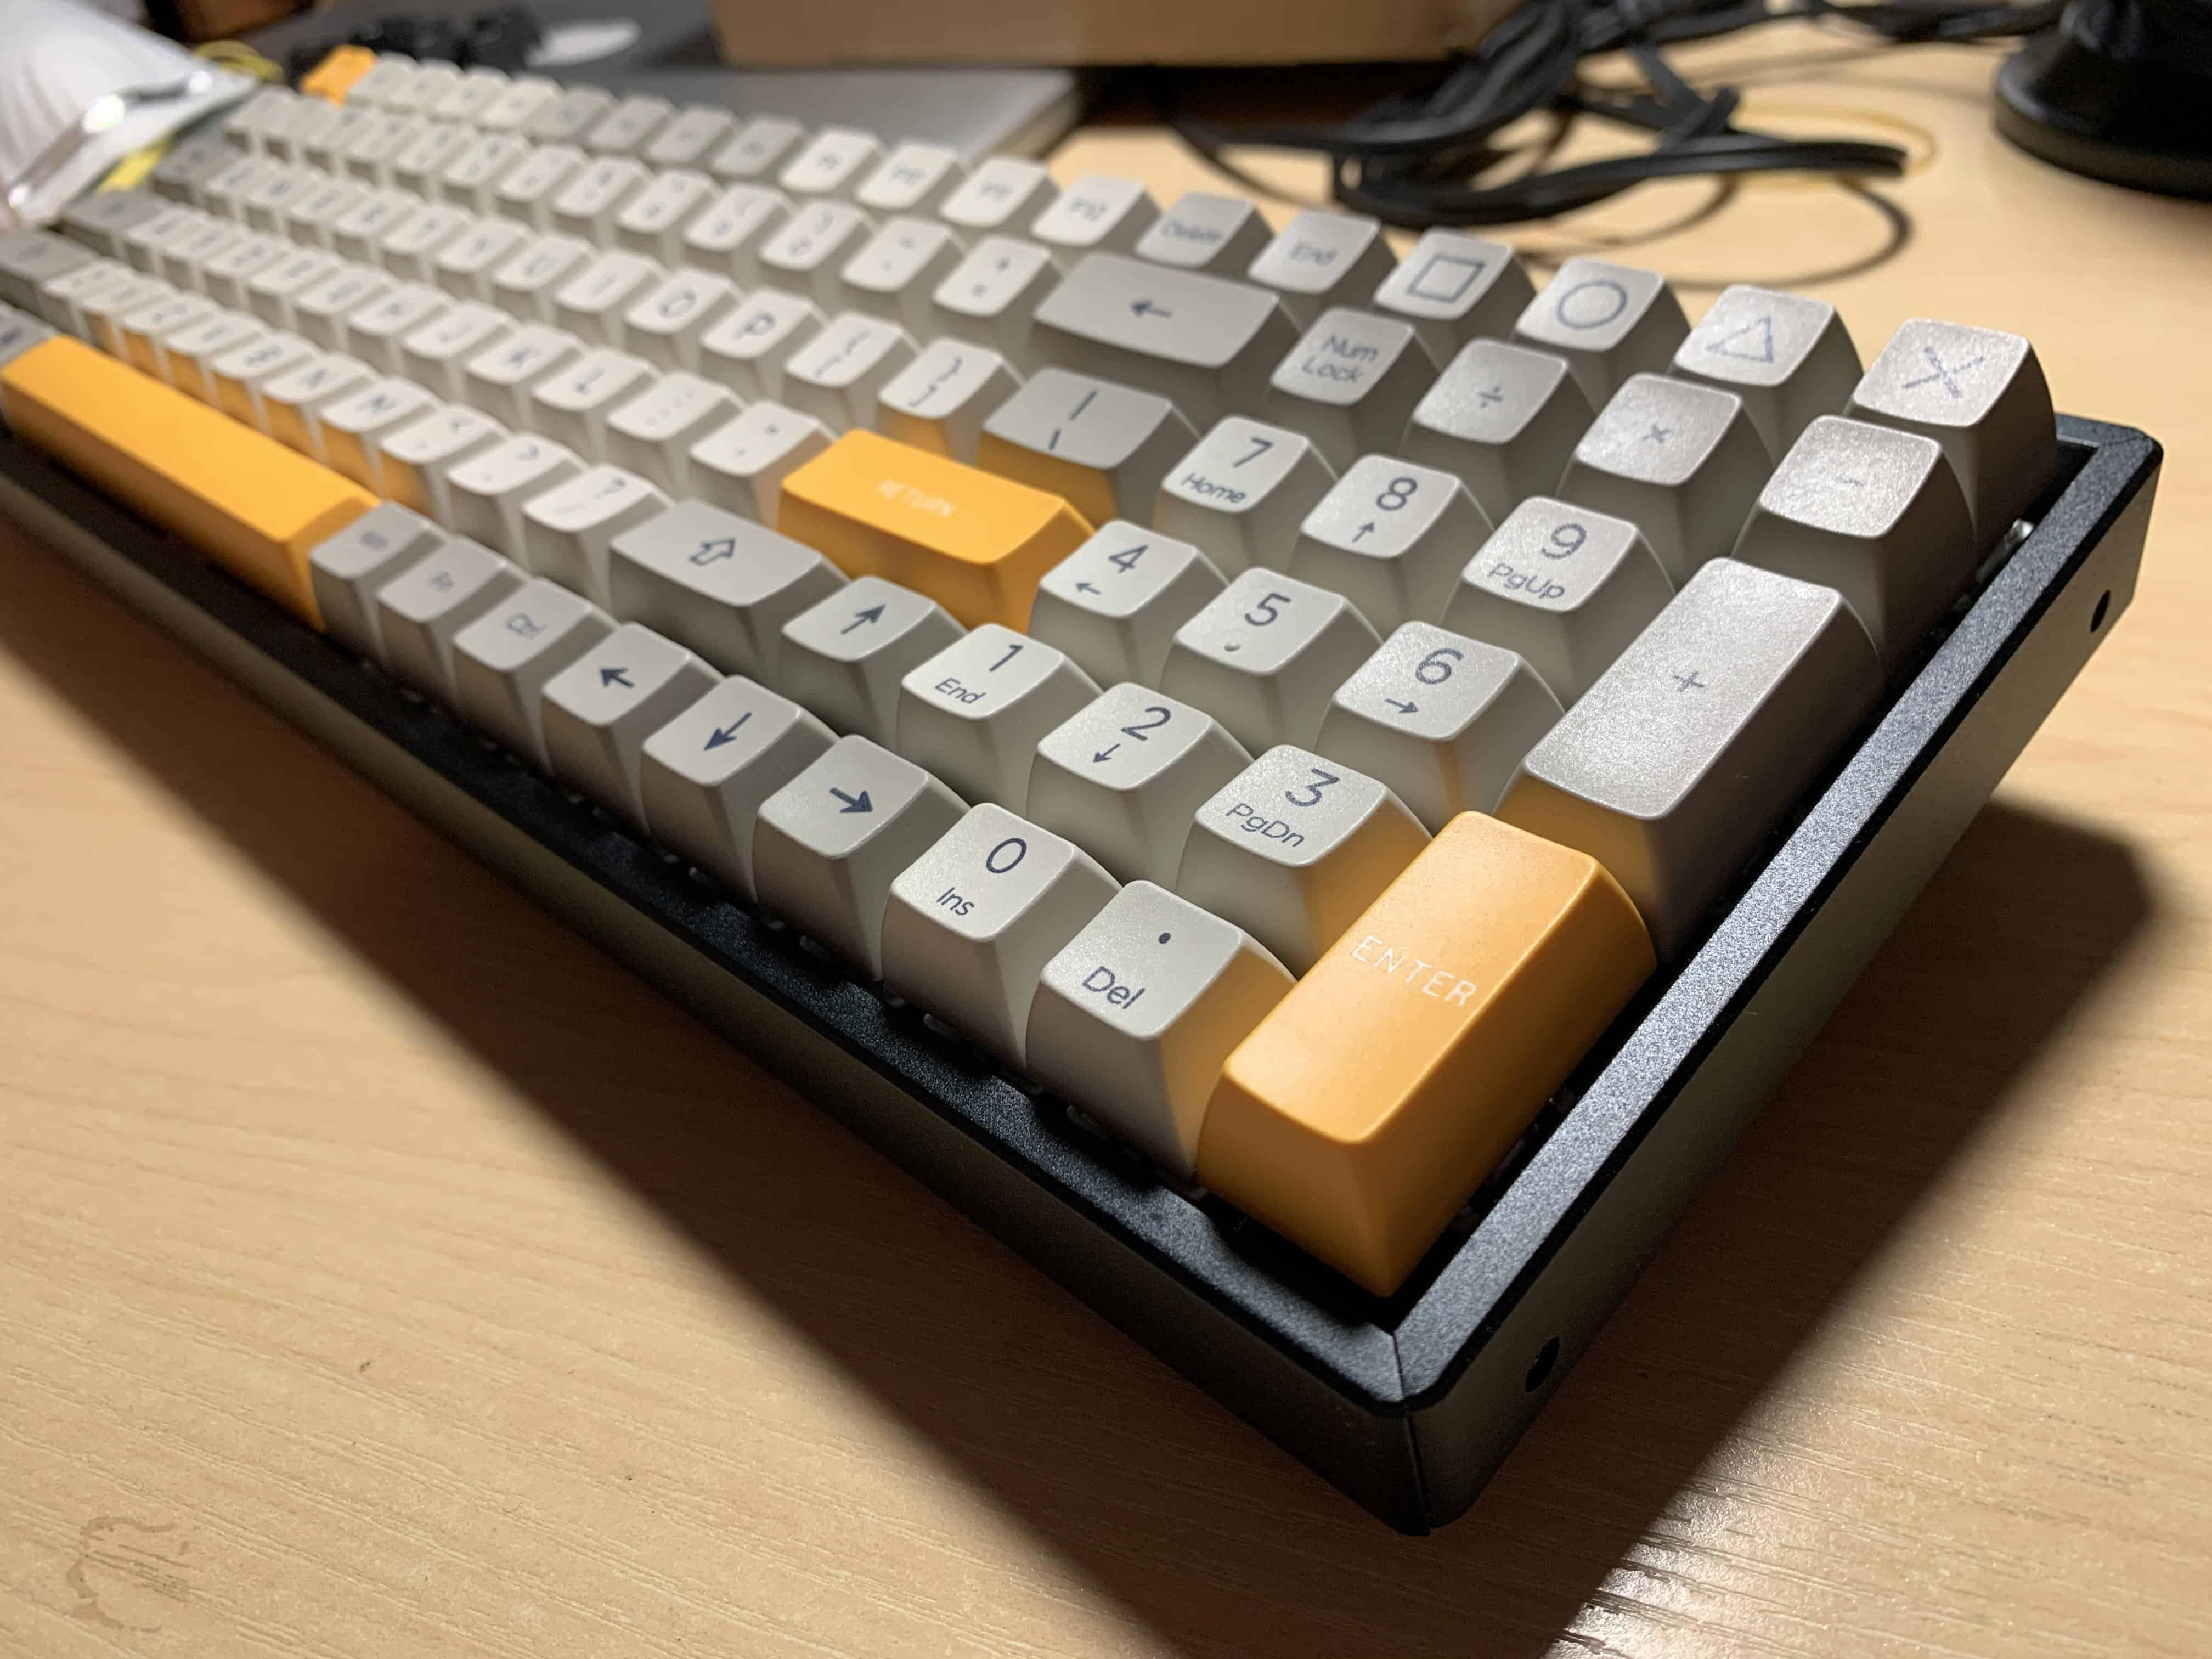 1800 size keyboard with plastic case